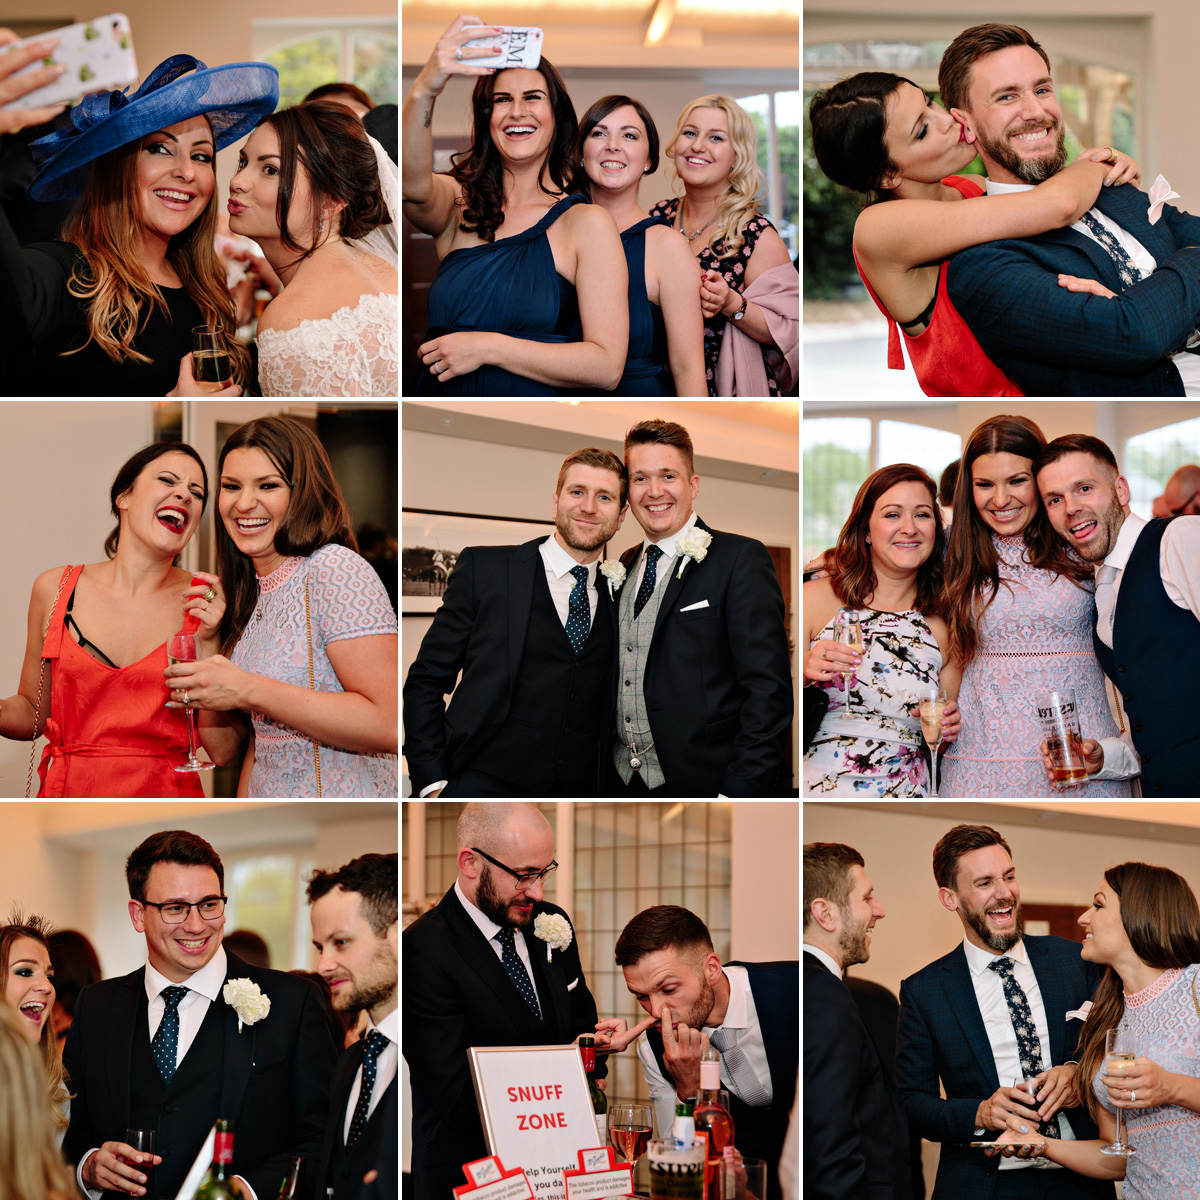 Wedding guests having fun, taking selfies